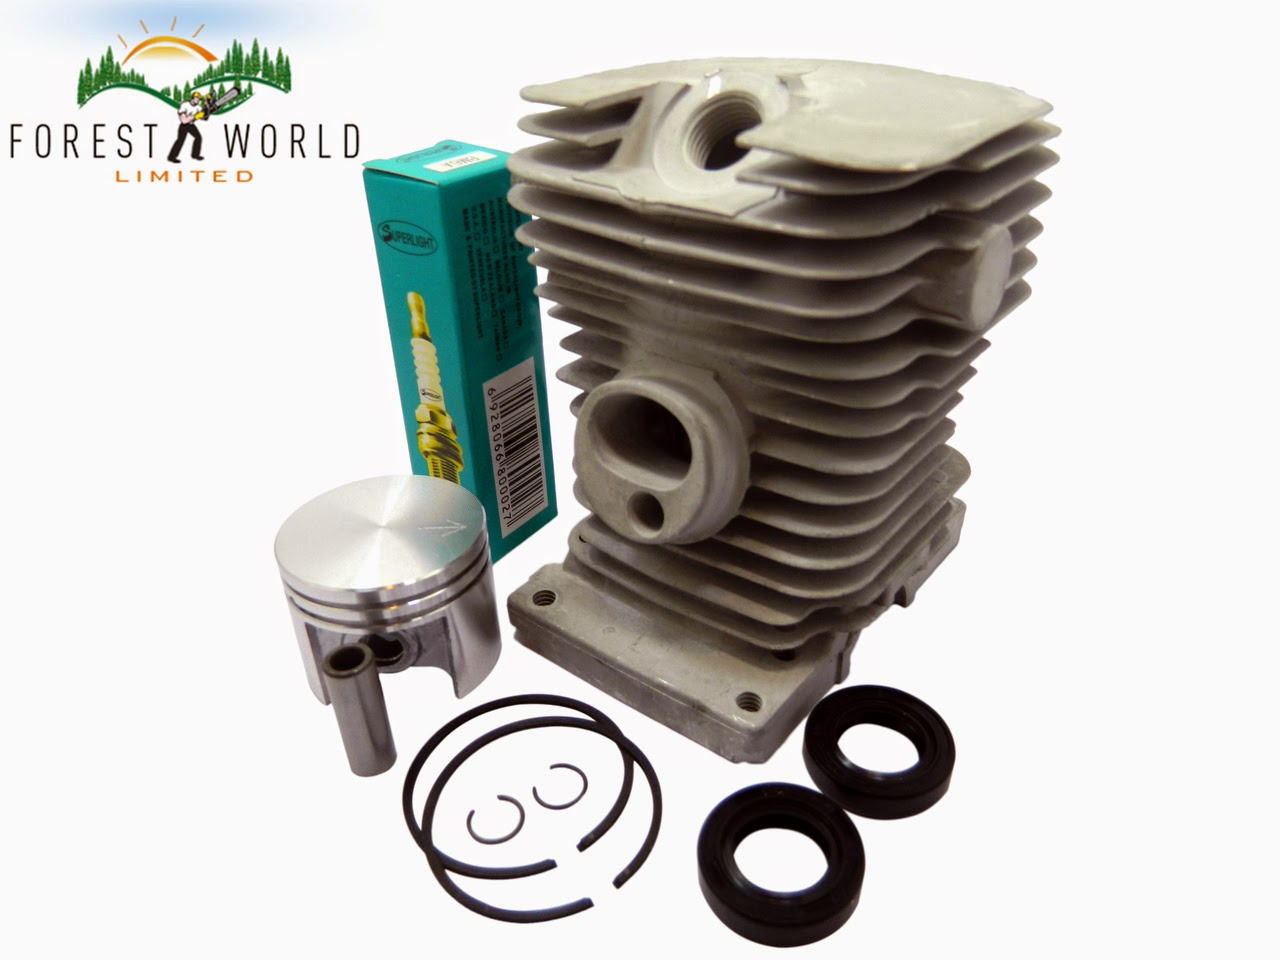 http://www.chainsawpartsonline.co.uk/stihl-ms-170-017-chainsaw-cylinder-piston-kit-37-mm-new-1130-020-1204/